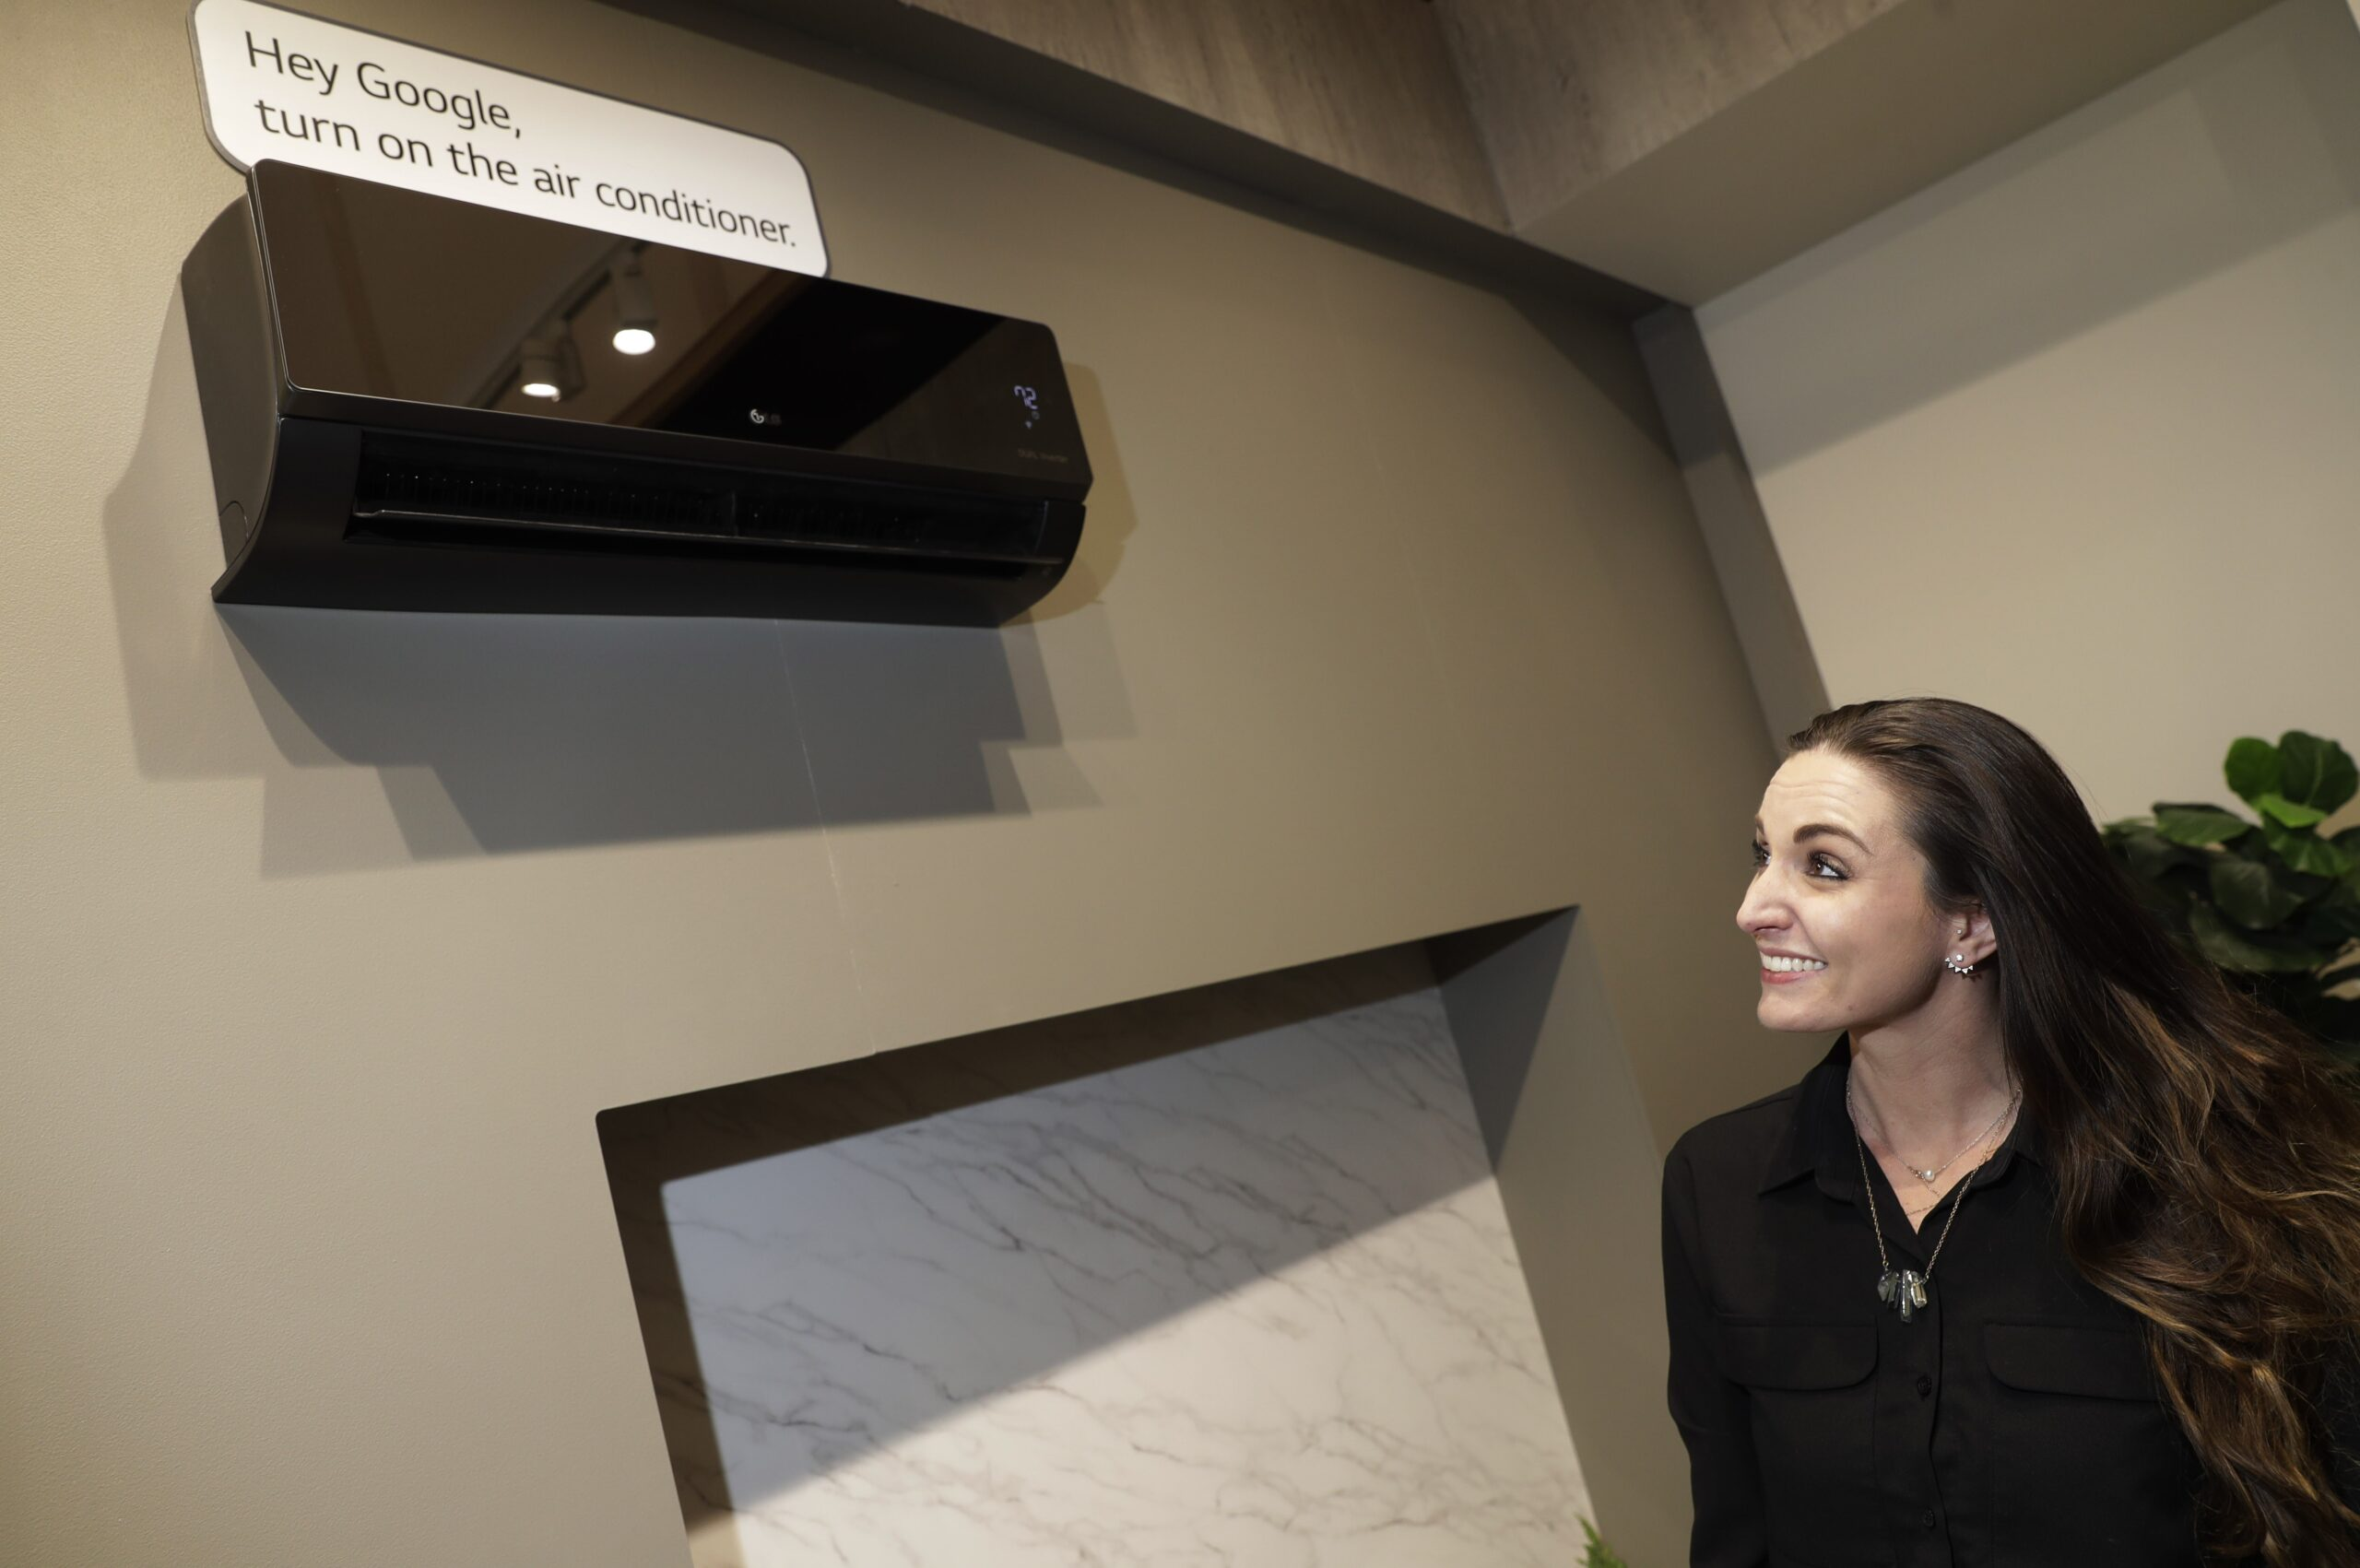 """Woman looking up at a black LG air conditioner with a sign that says """"Hey Google, turn on the air conditioner"""""""